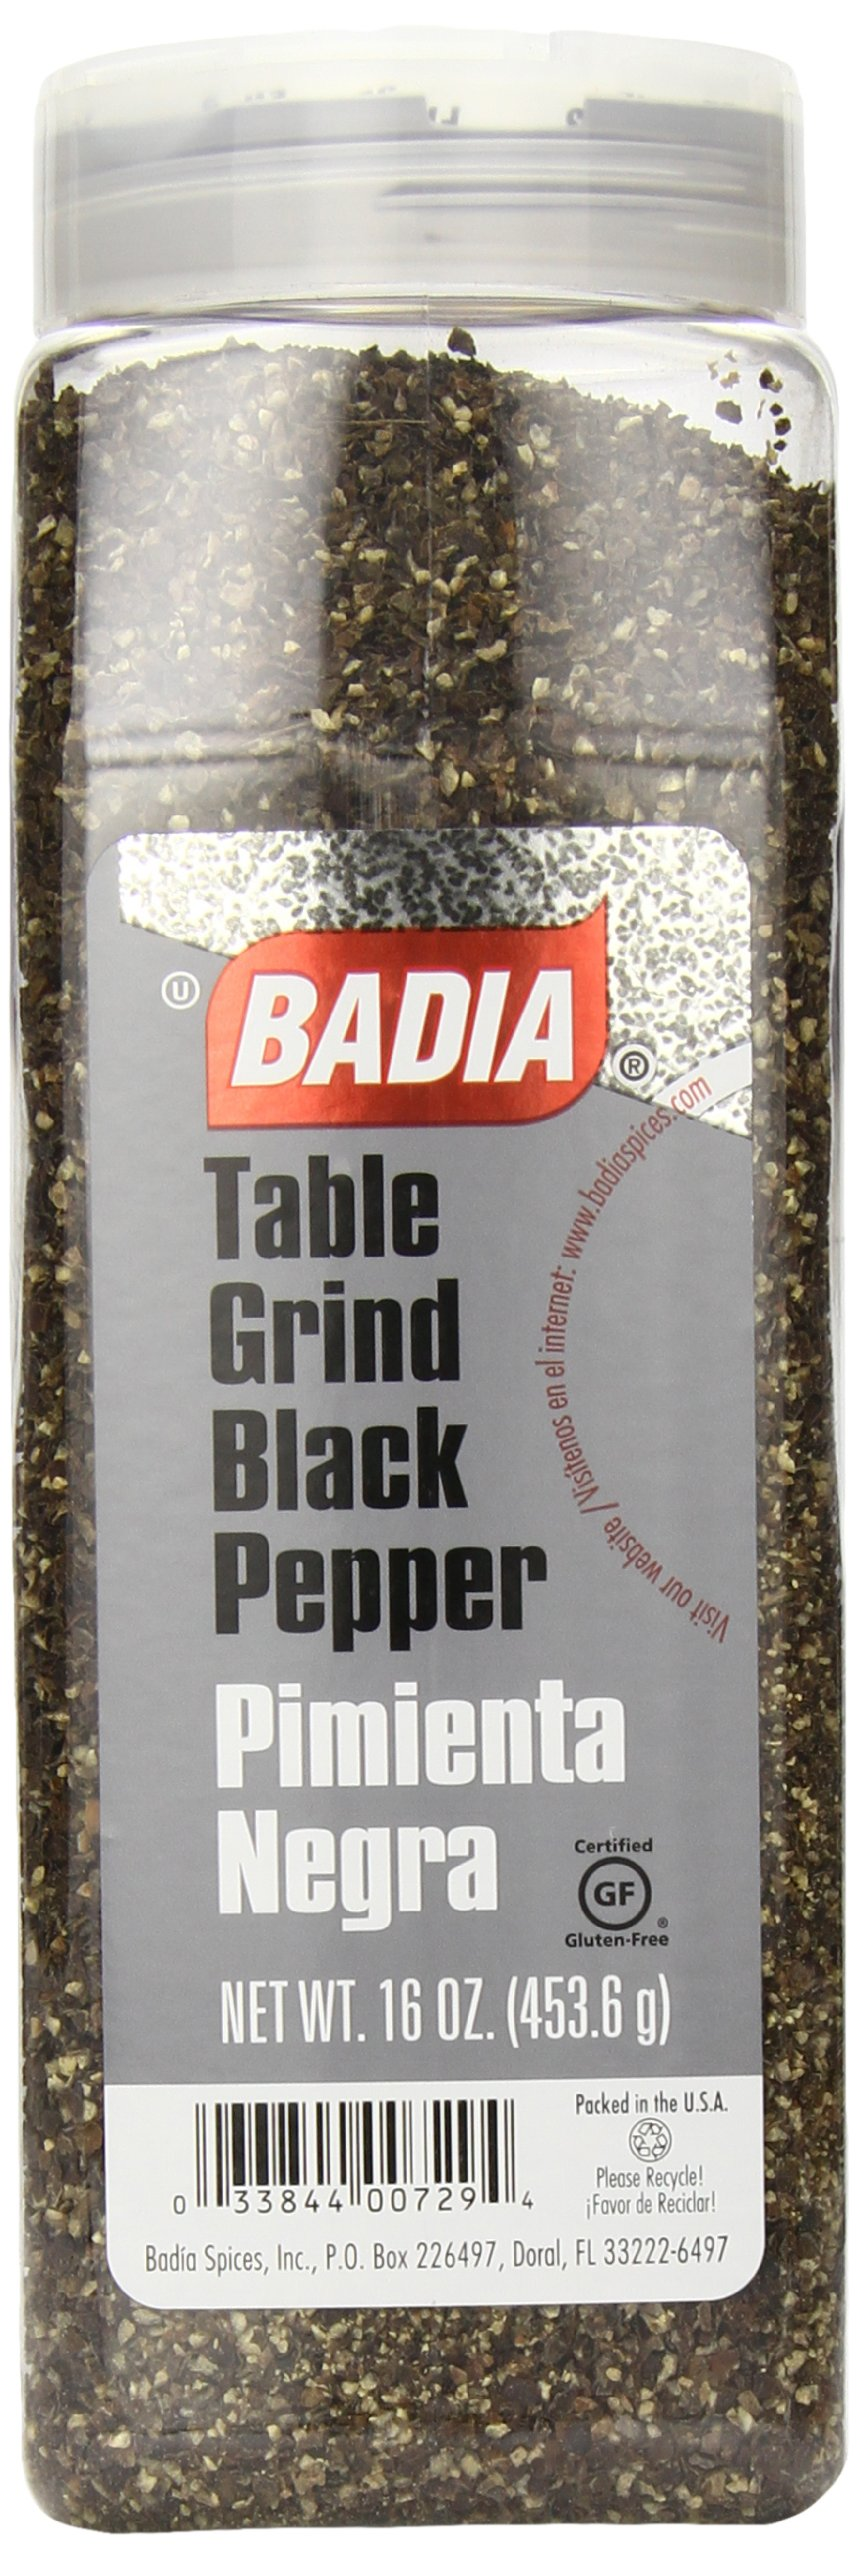 Badia Black Pepper Table Grind, 16 Ounce